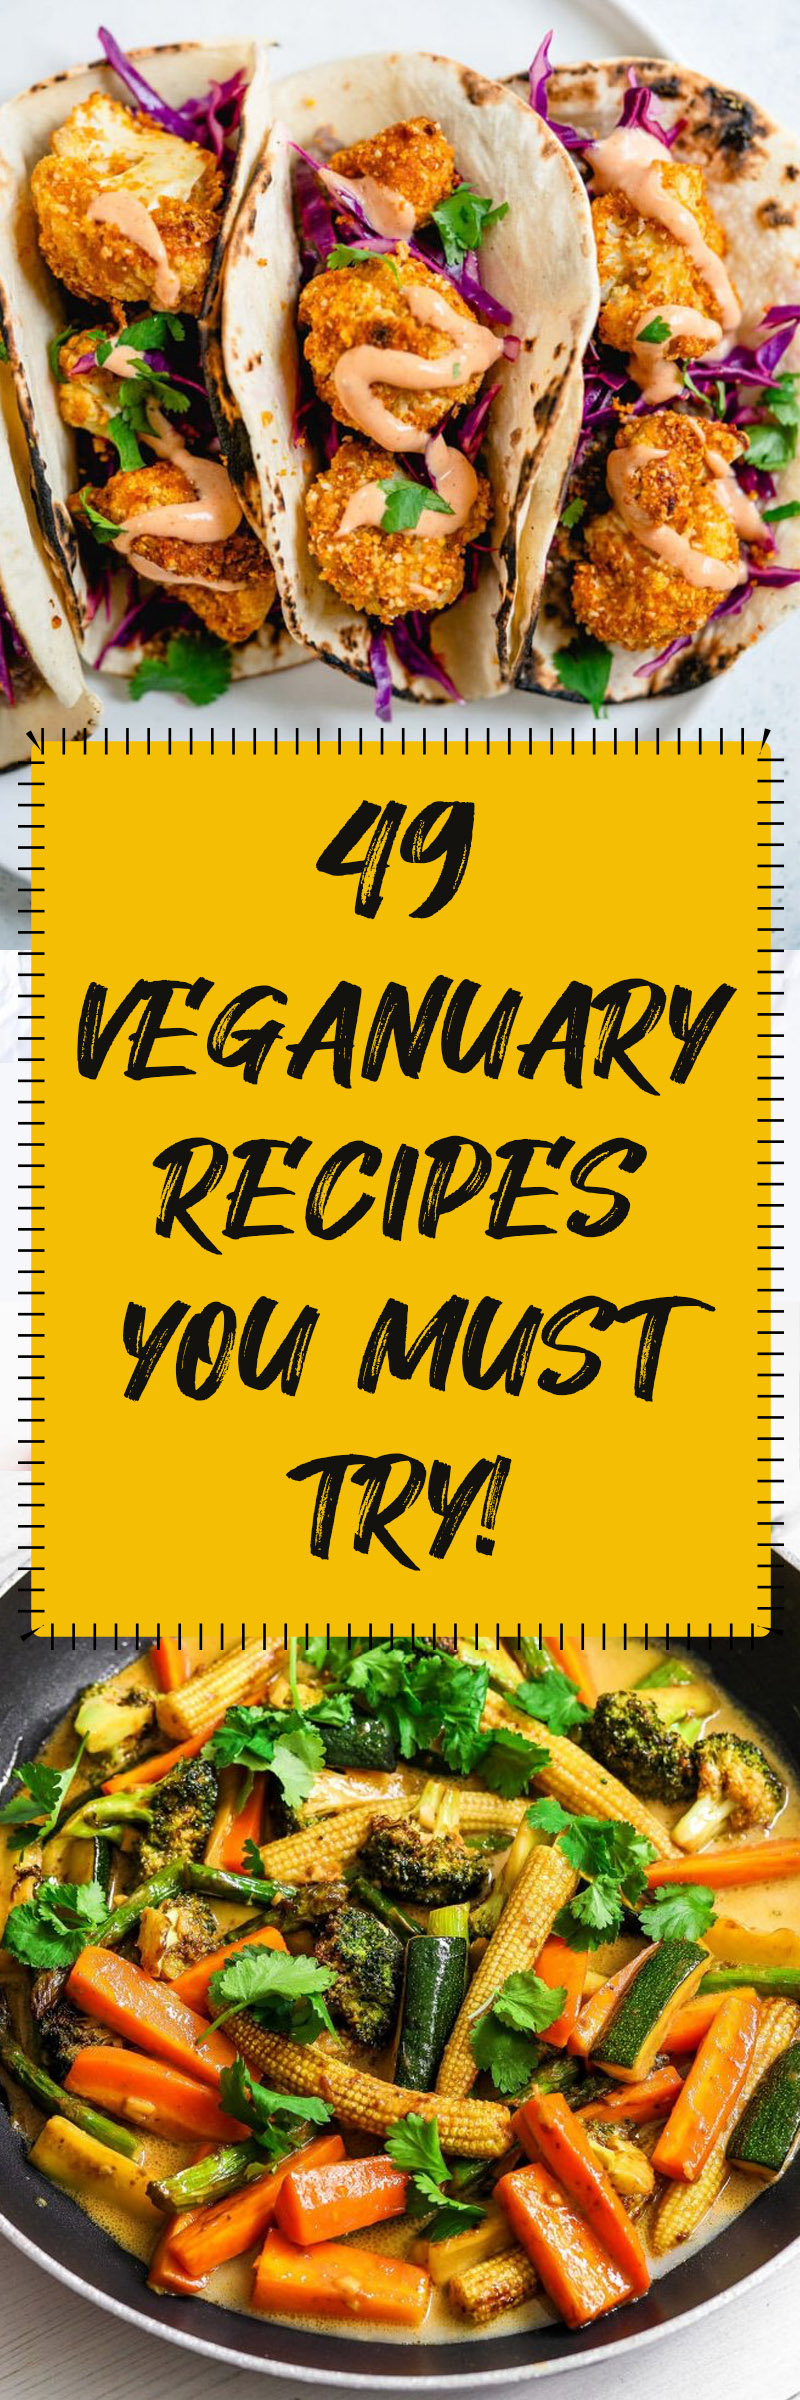 49 Easiest Wholesome 2020 Veganuary Recipes That Style Completely Implausible! 1